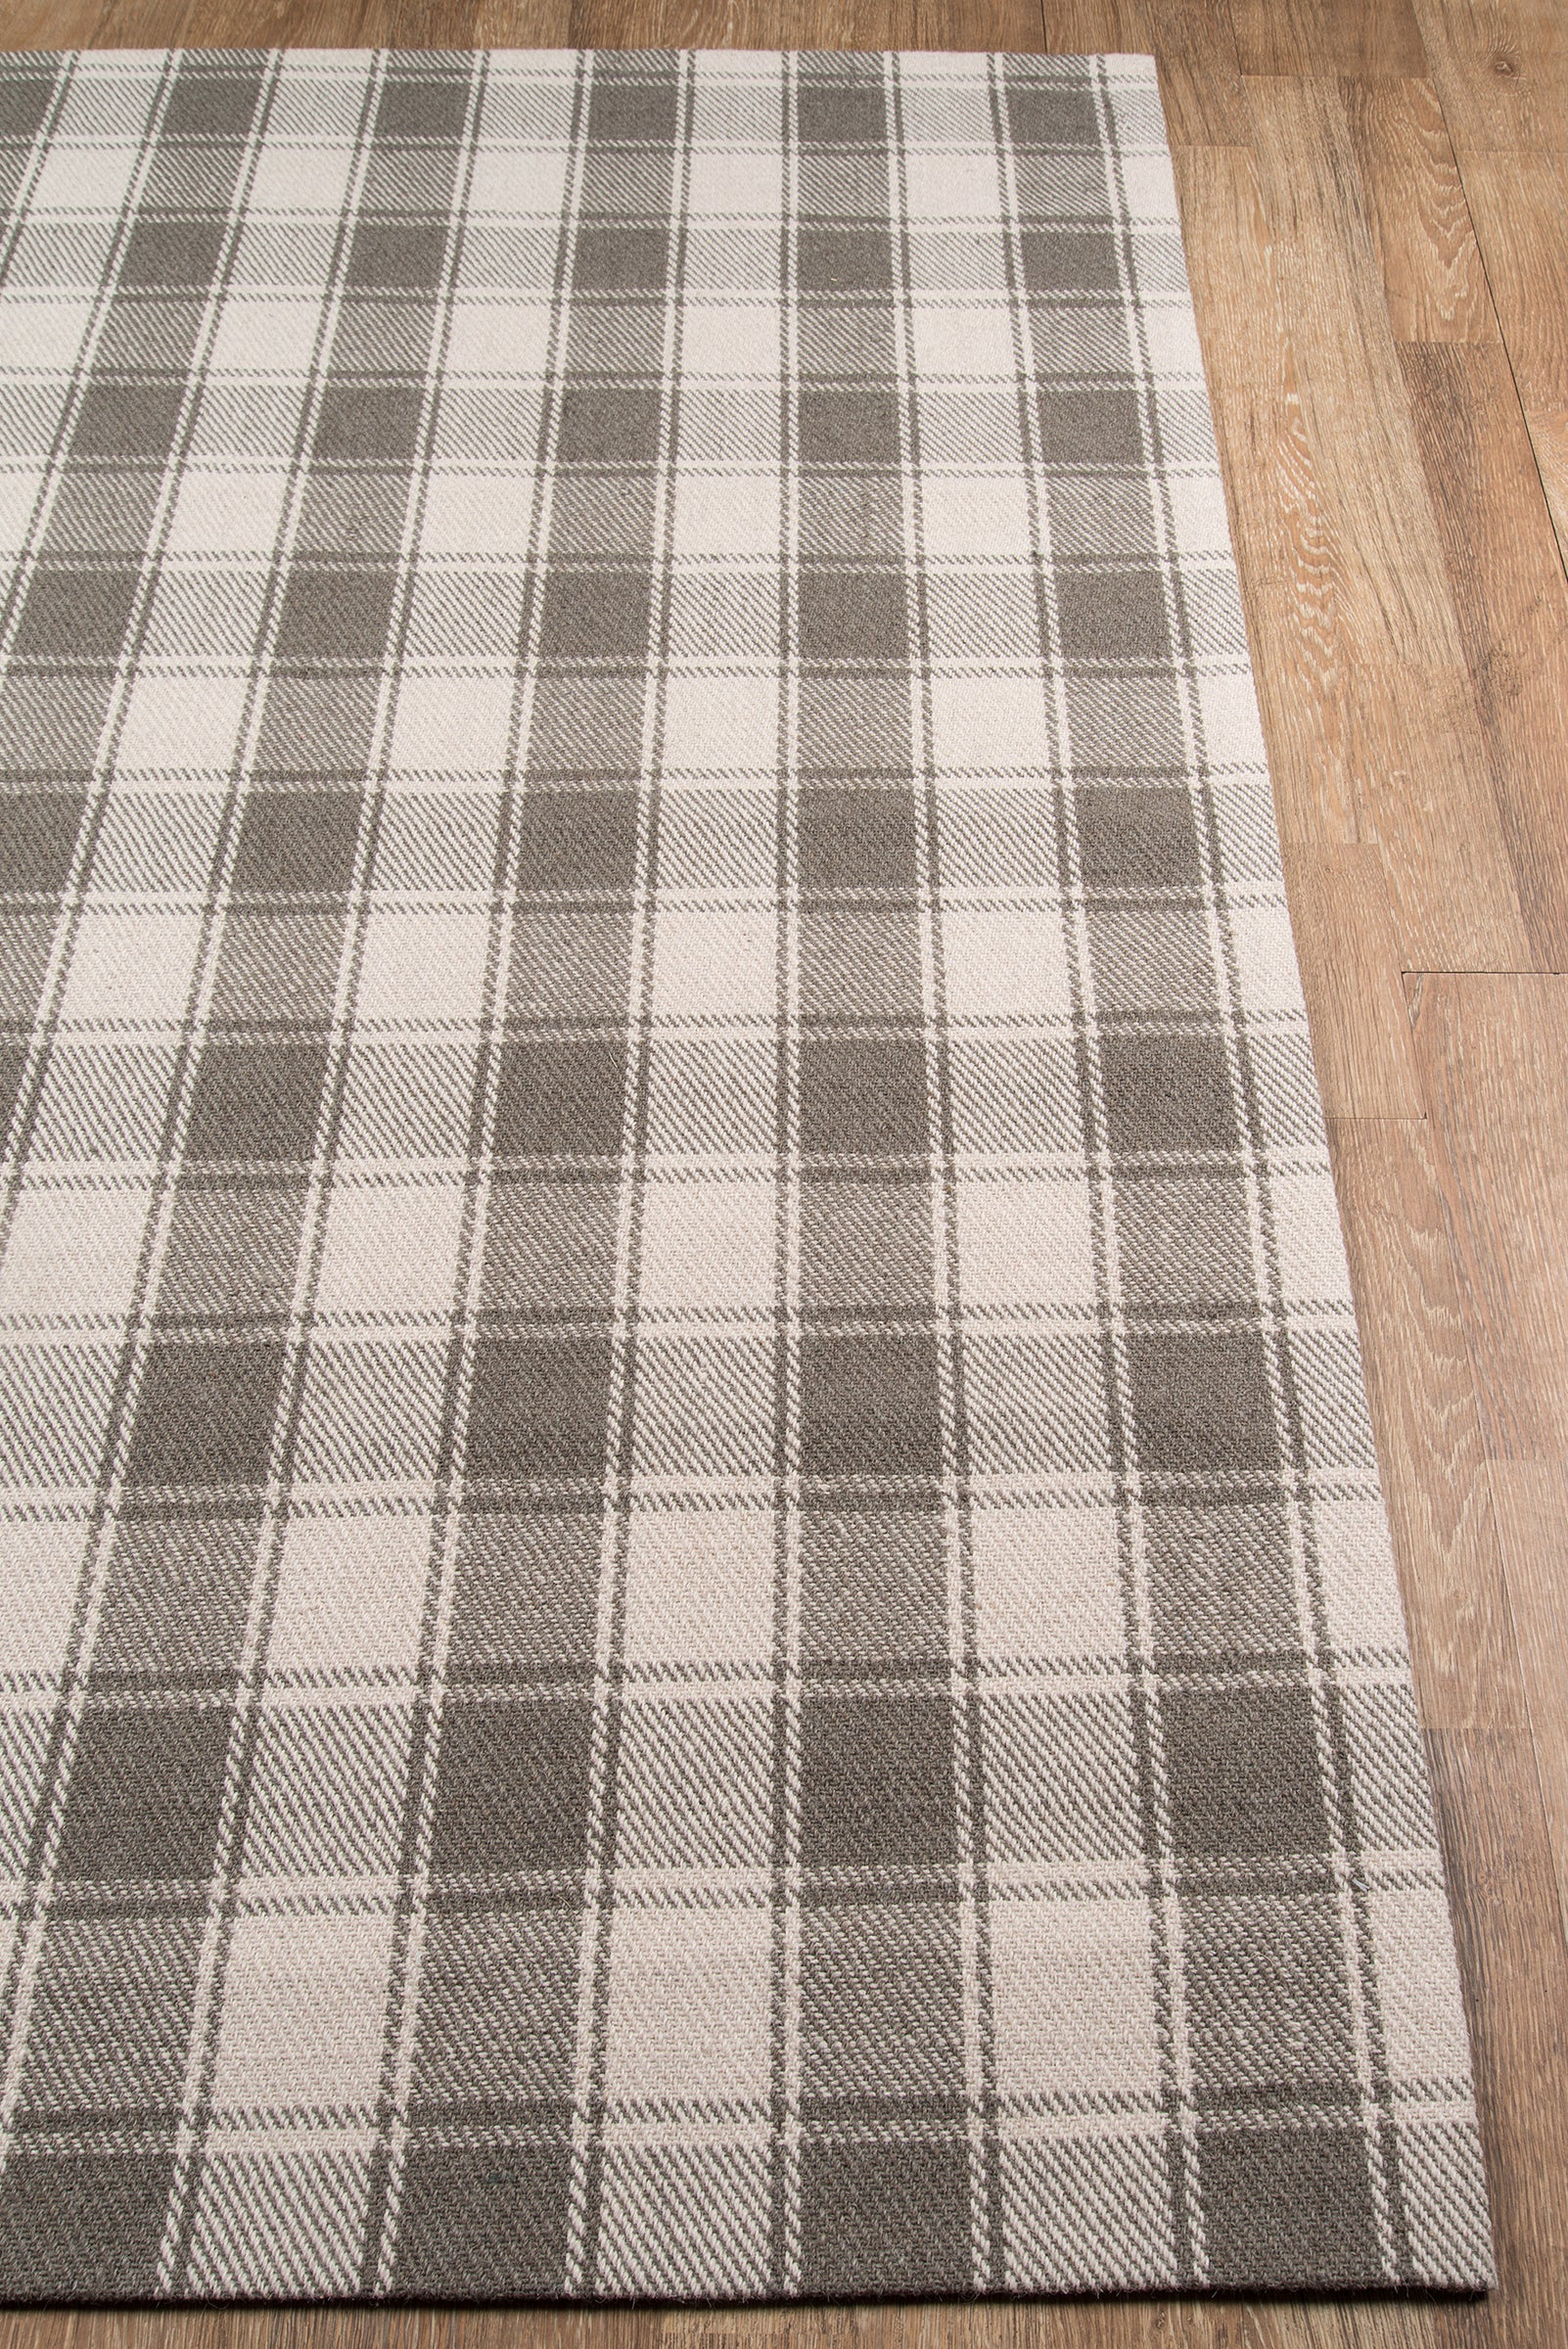 Gray Plaid Tartan Wool Rug - Erin Gates - Marlborough